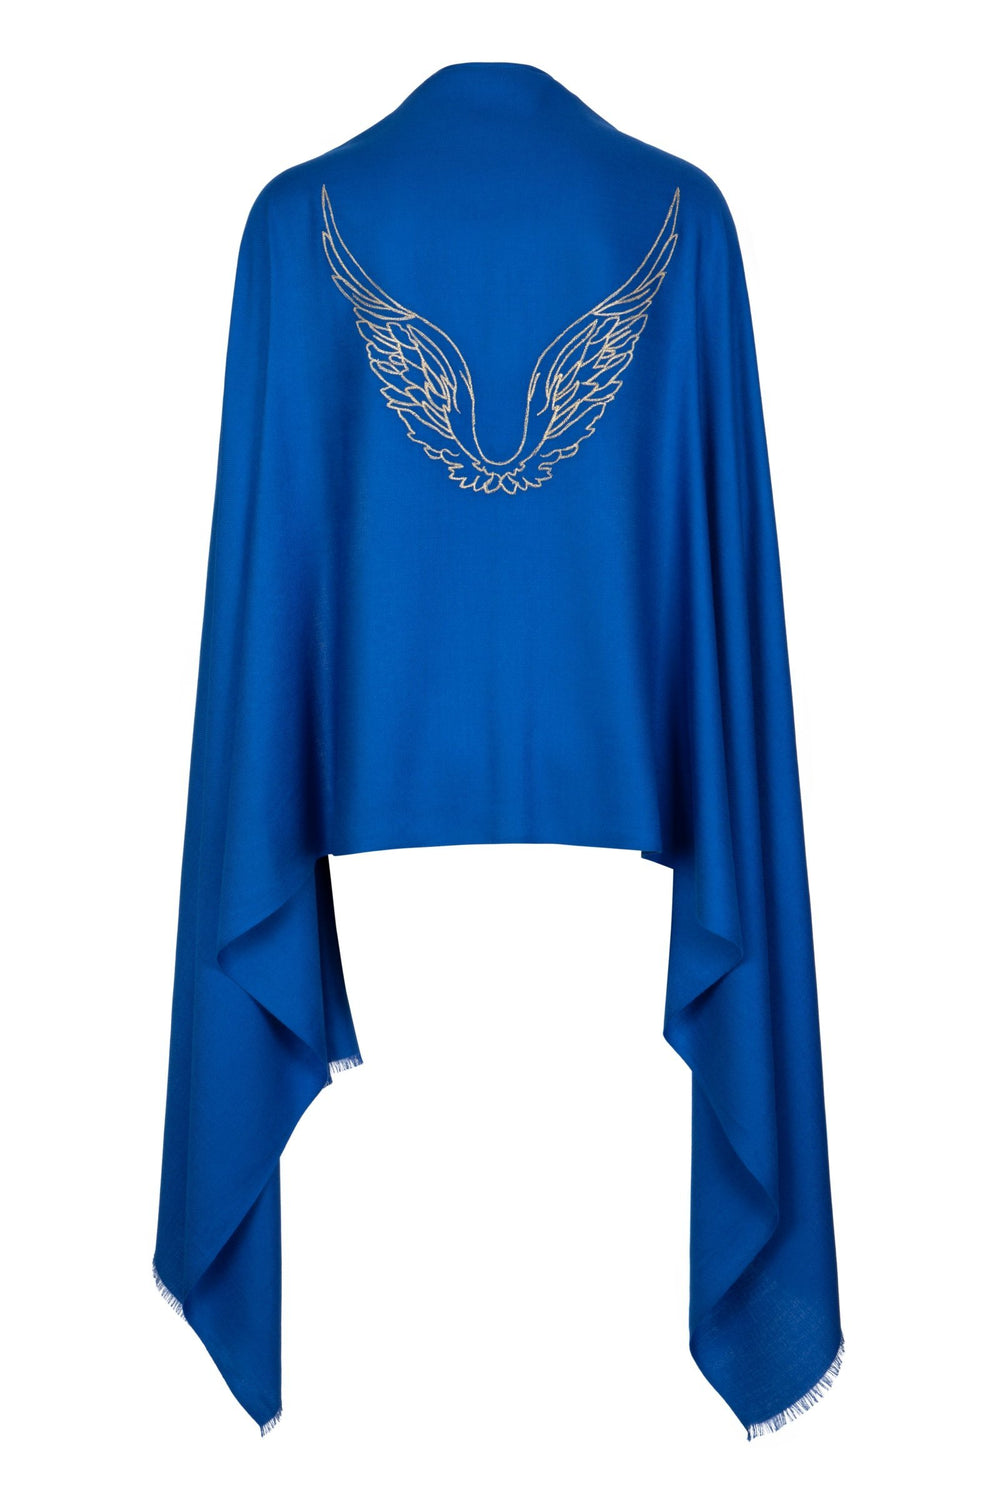 Angel Michael Blue Wrap Embroidered Wings Wrap Scarf for Protection, Strength & Courage